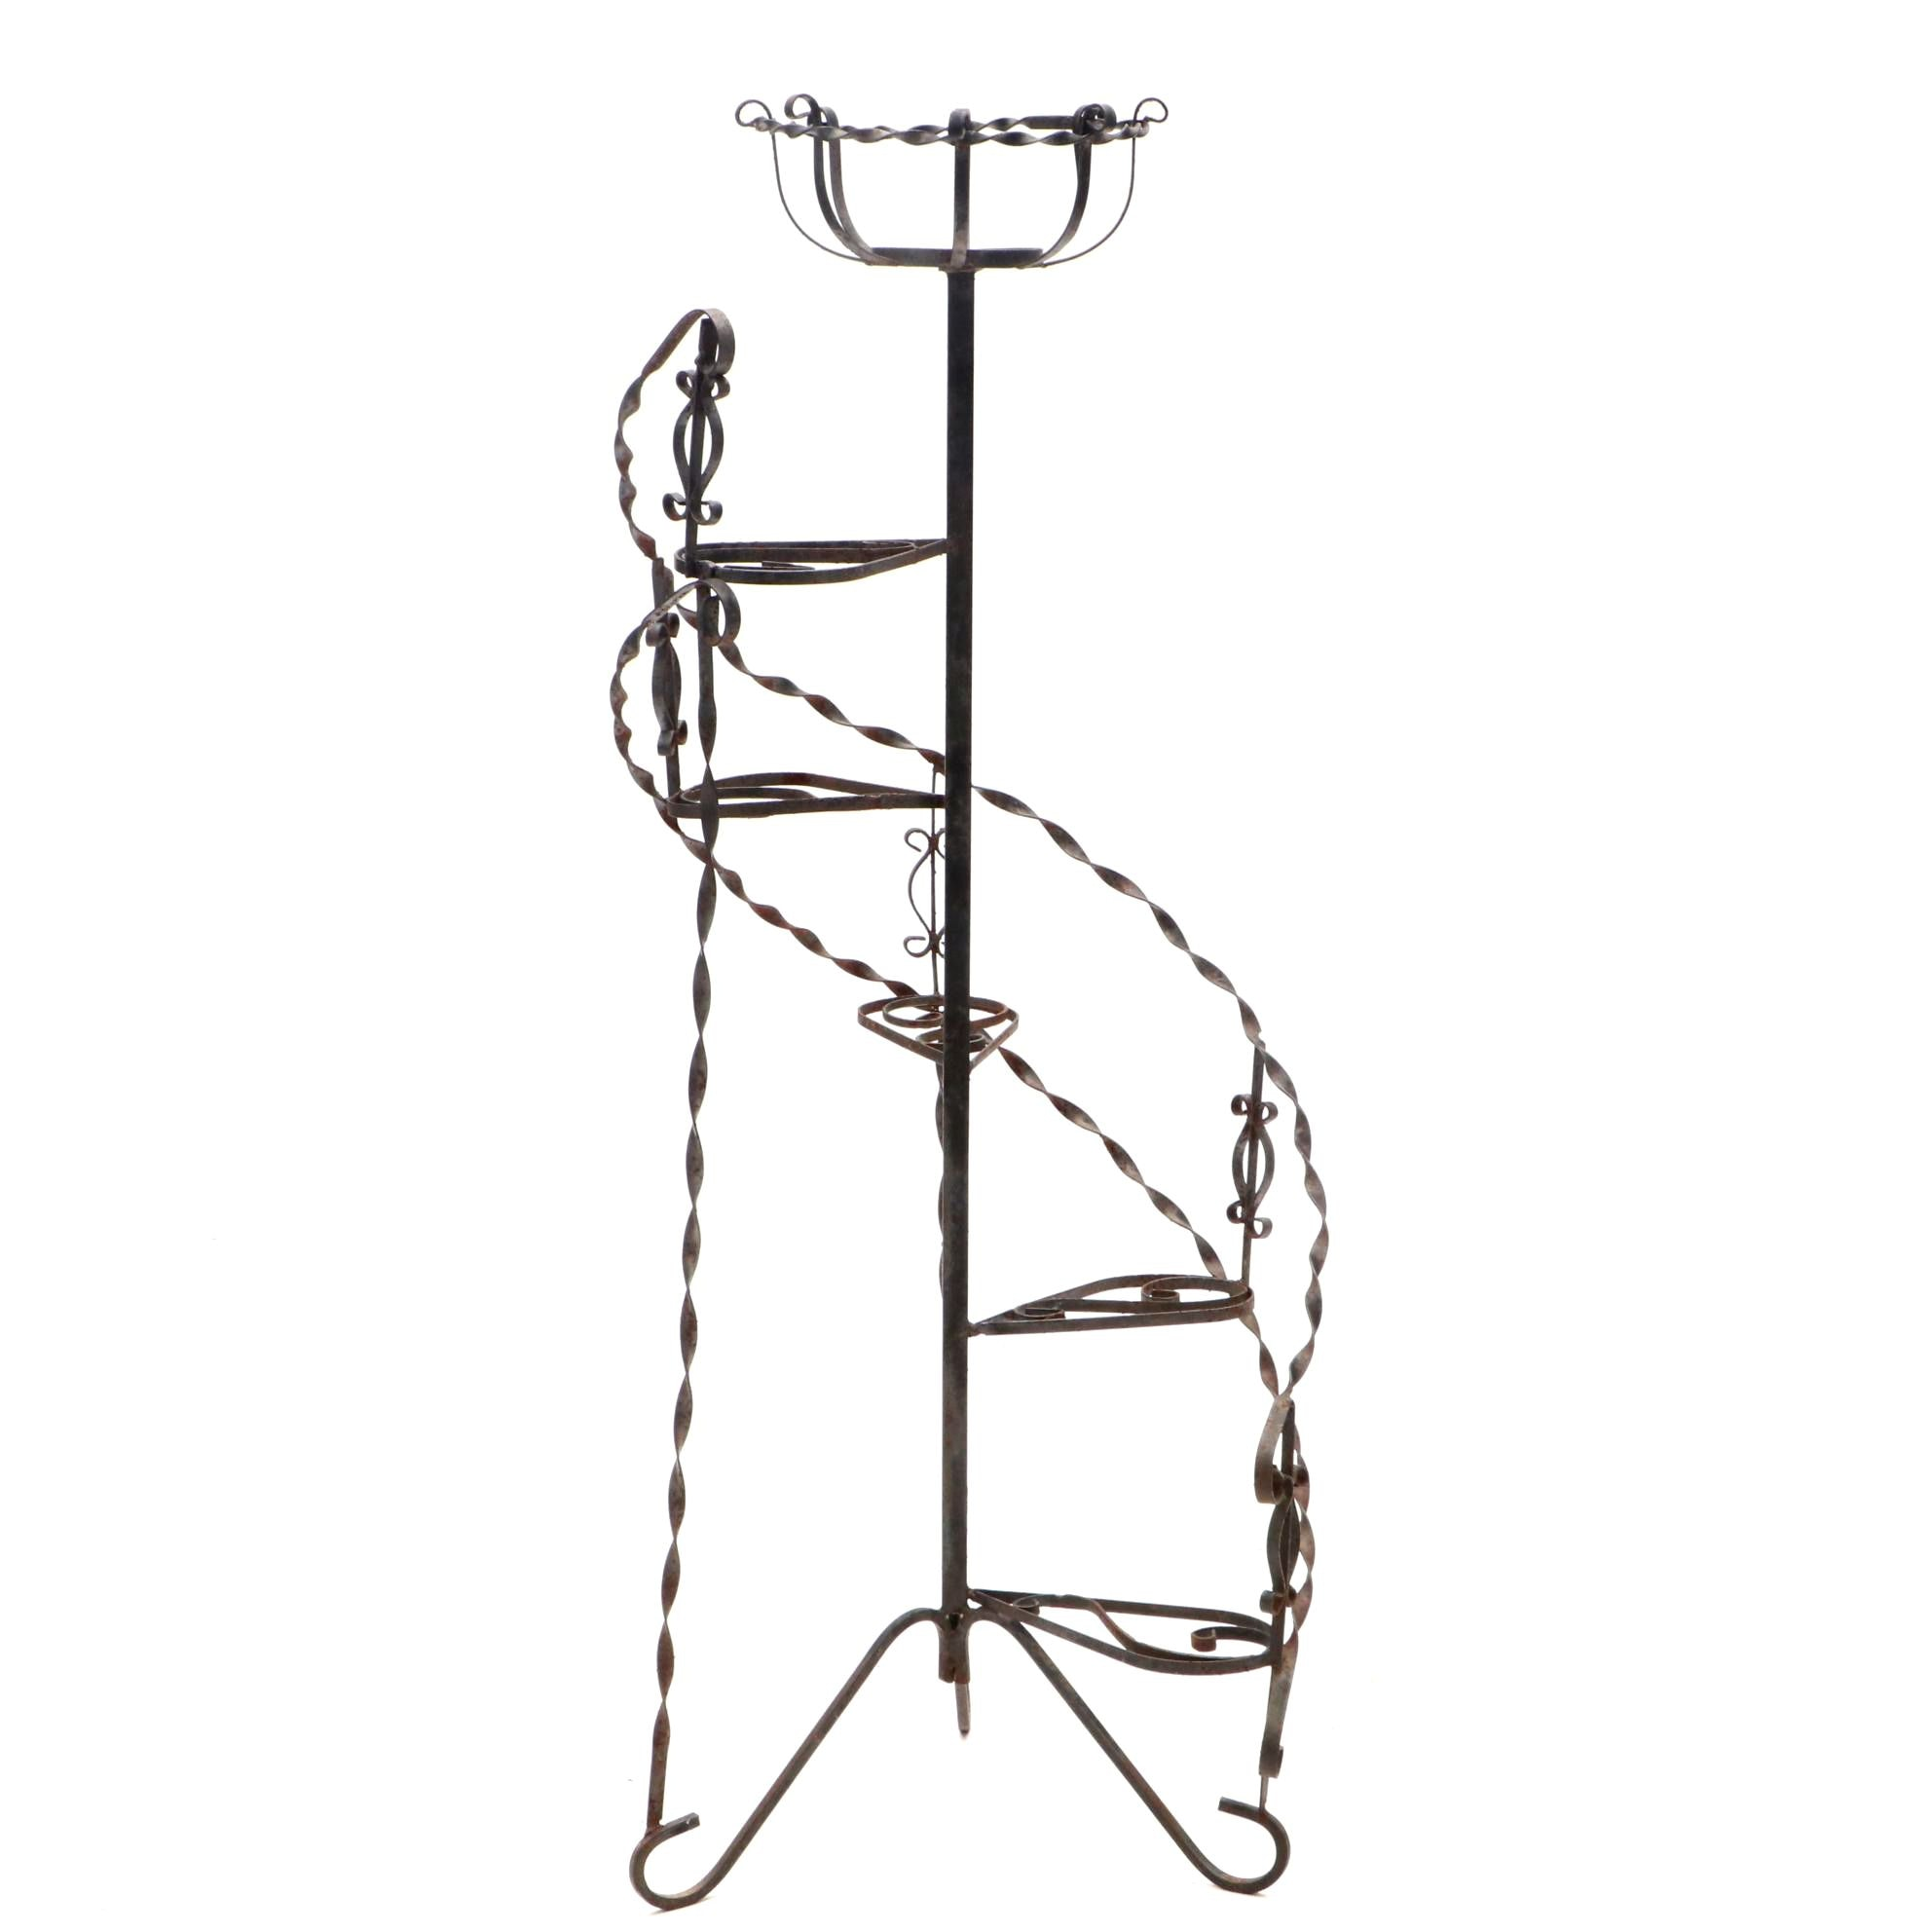 1970s Upright Wrought Iron Plant Stand